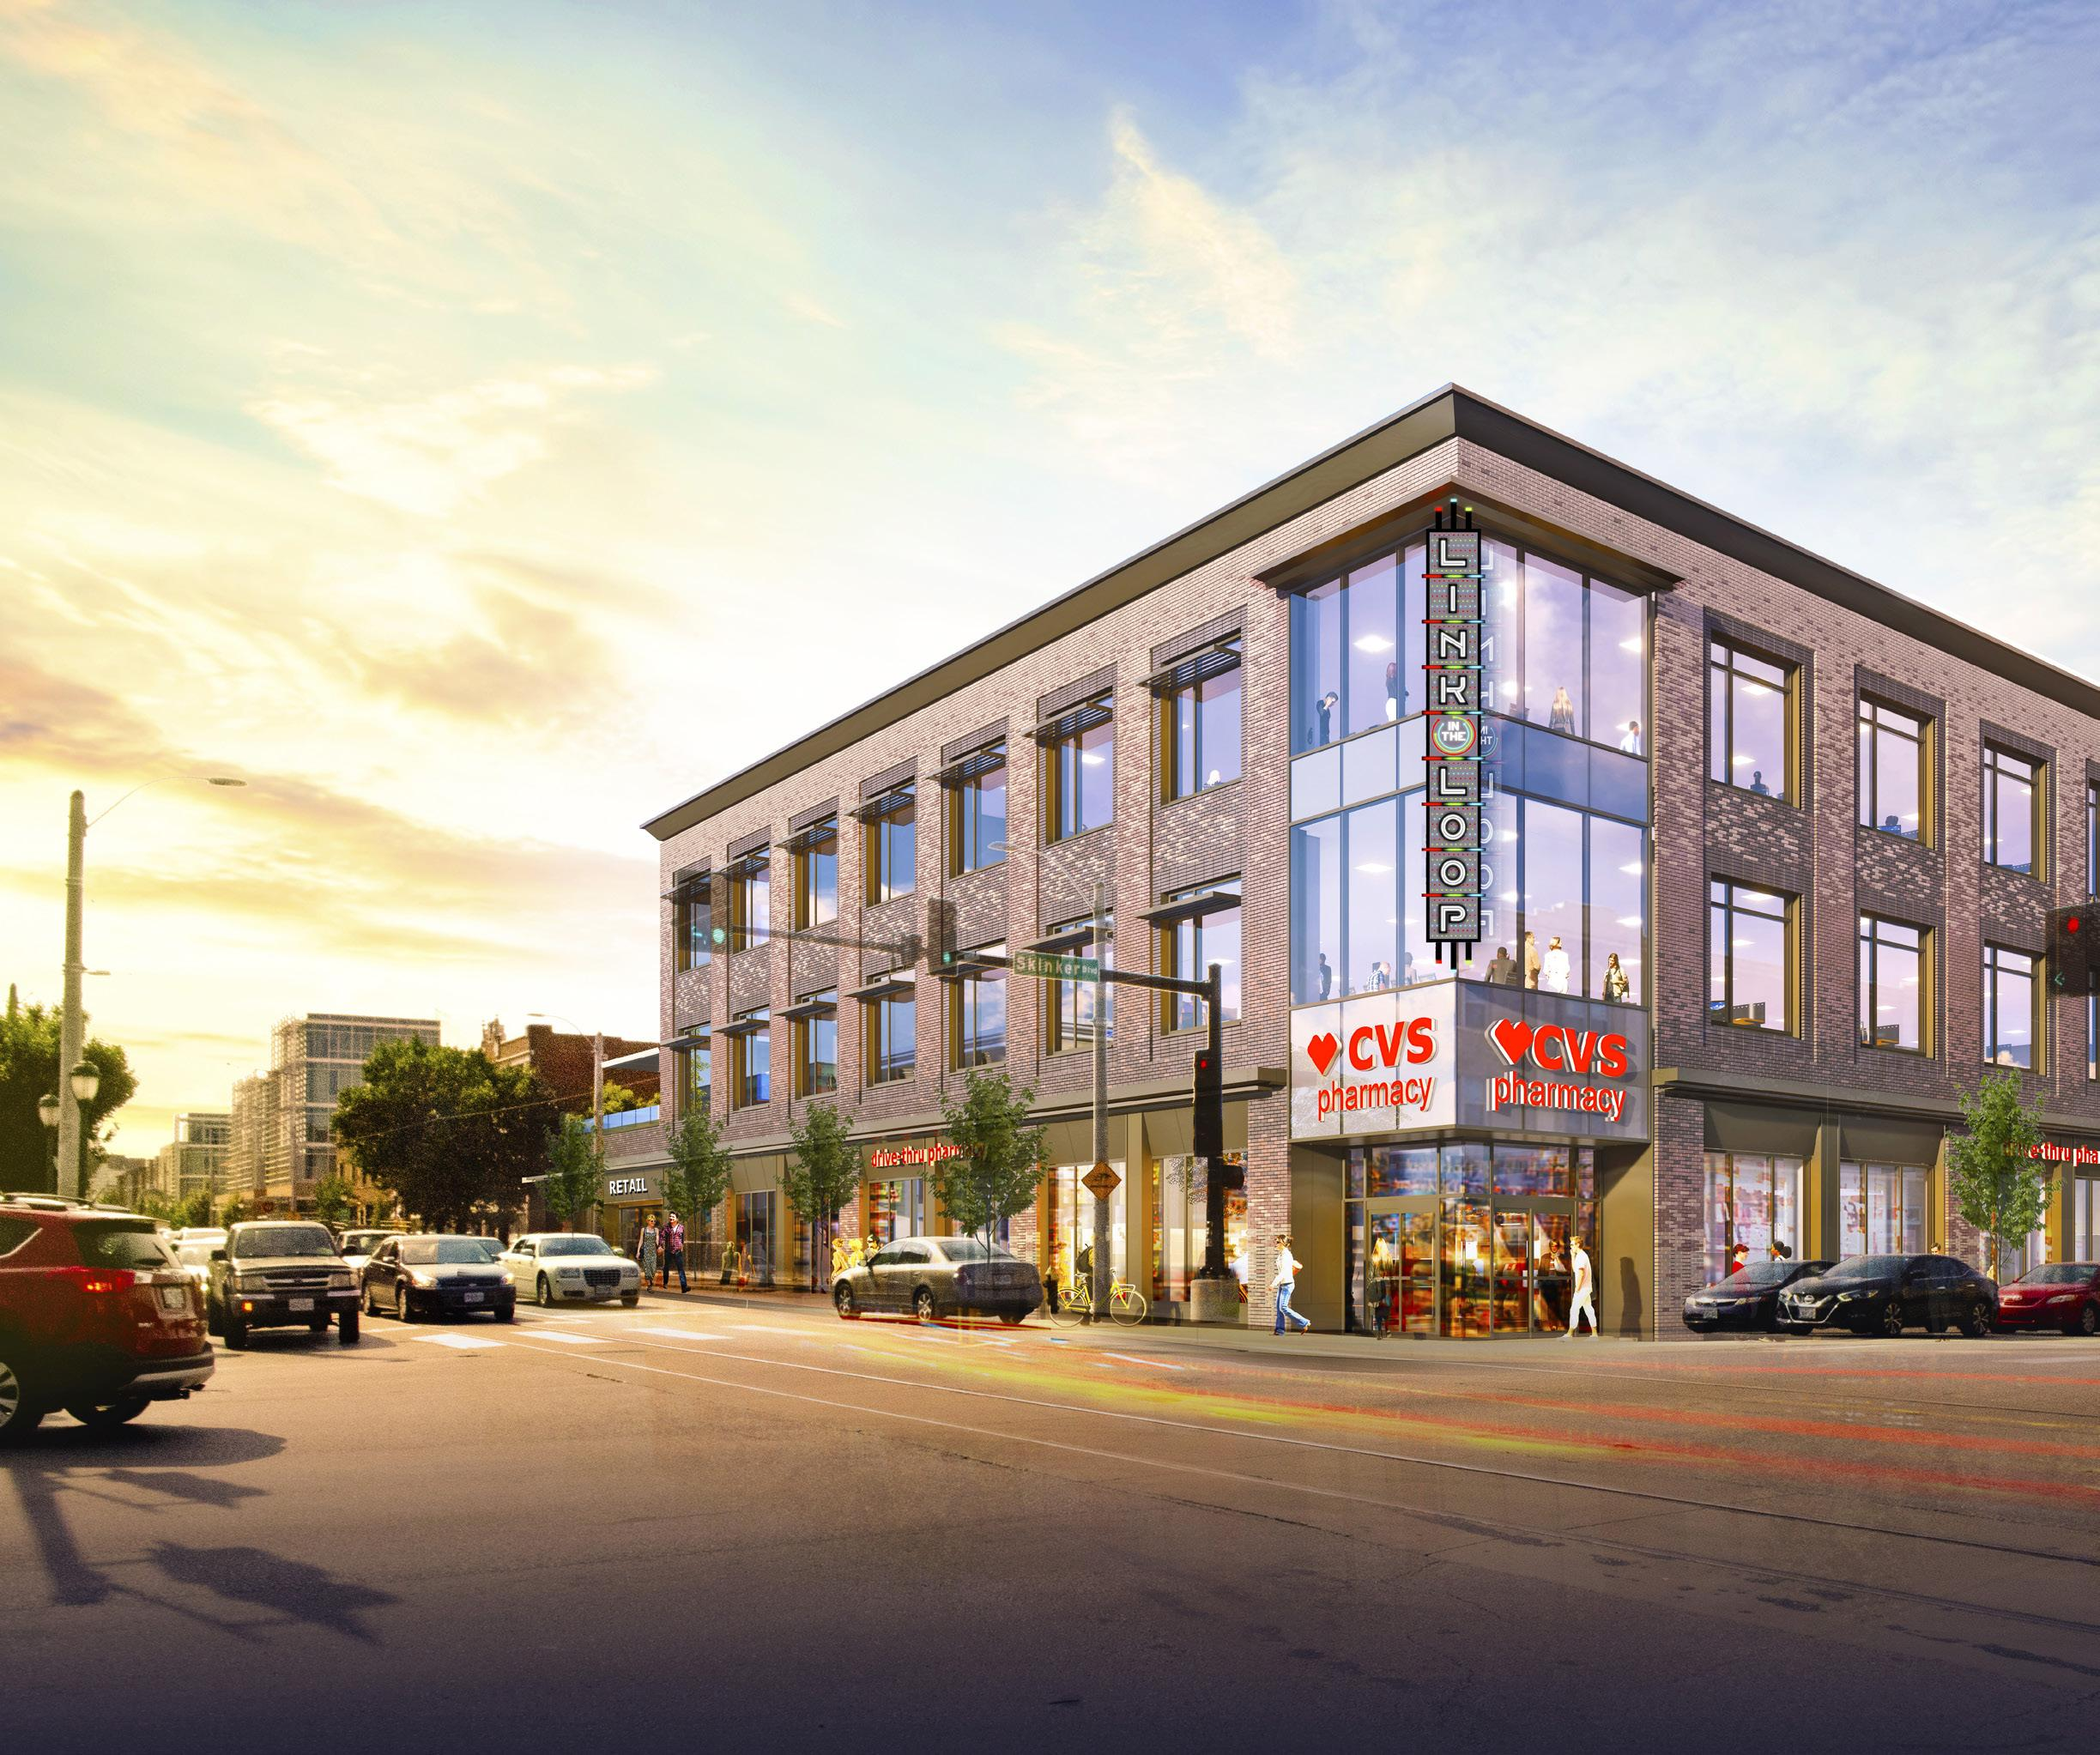 Page 16 of Link in the Loop Dominates Delmar and Skinker, Inviting Retail and Office Tenants to Join CVS